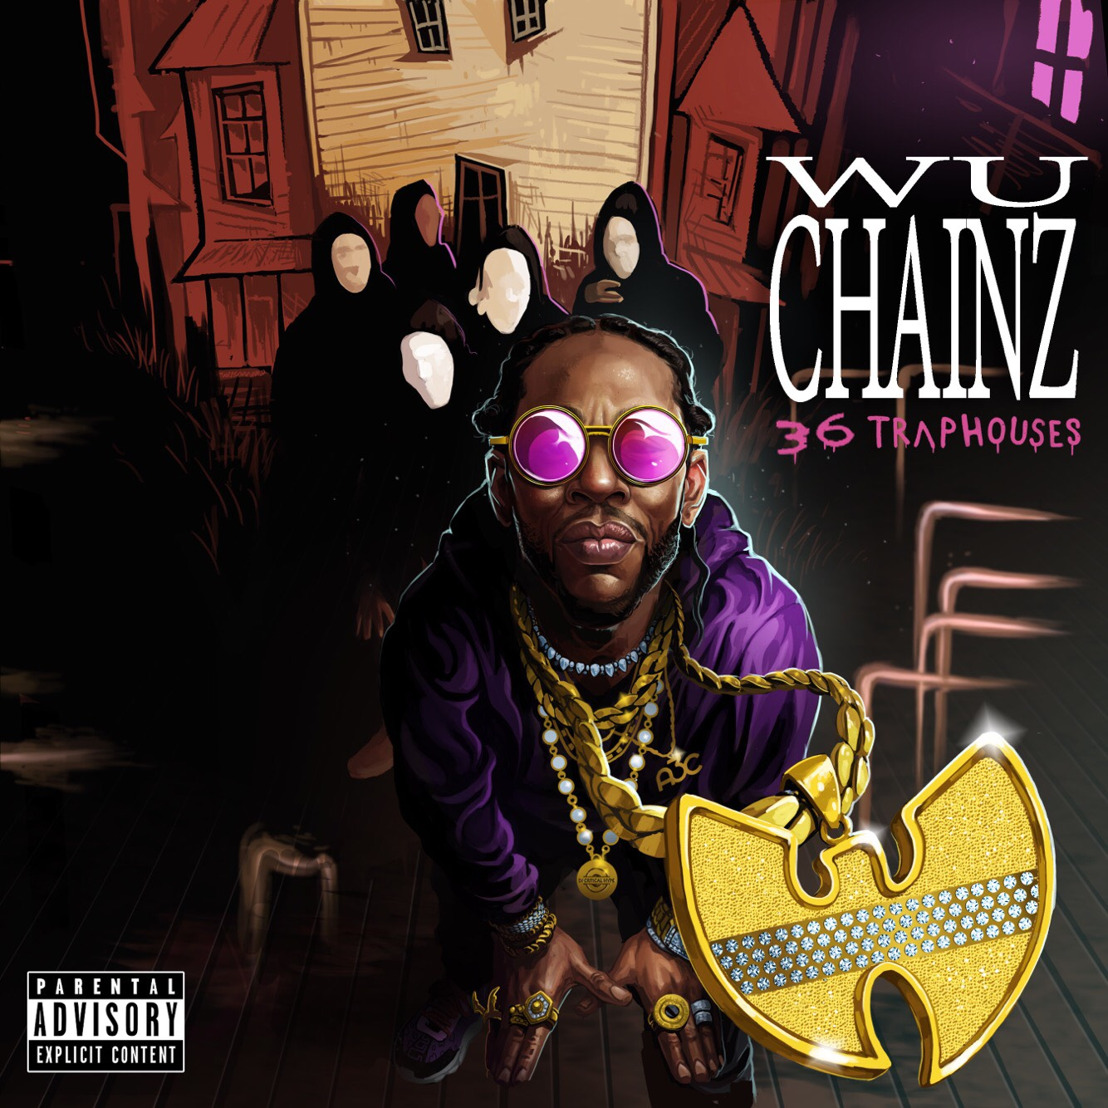 A3C & DJ Critical Hype presents Wu-Chainz: 36 Trap Houses